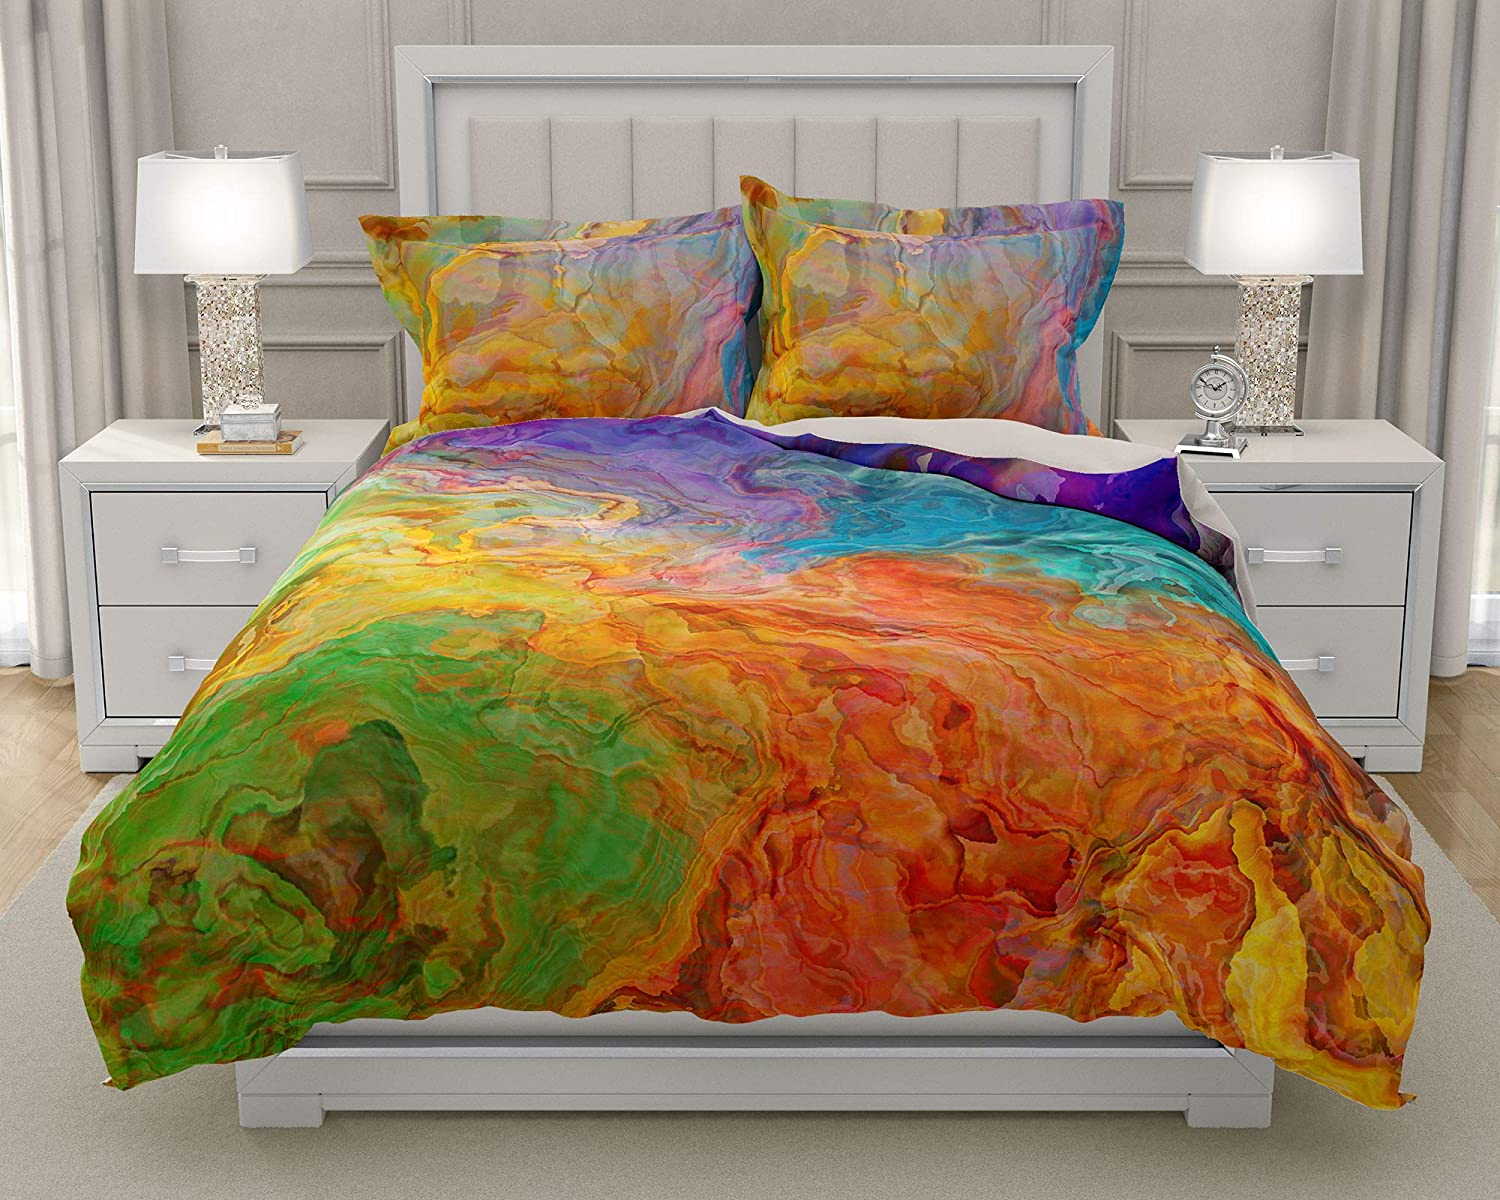 Image of Home and Kitchen King or Queen 3 pc Duvet Cover Set with abstract art, Carnival